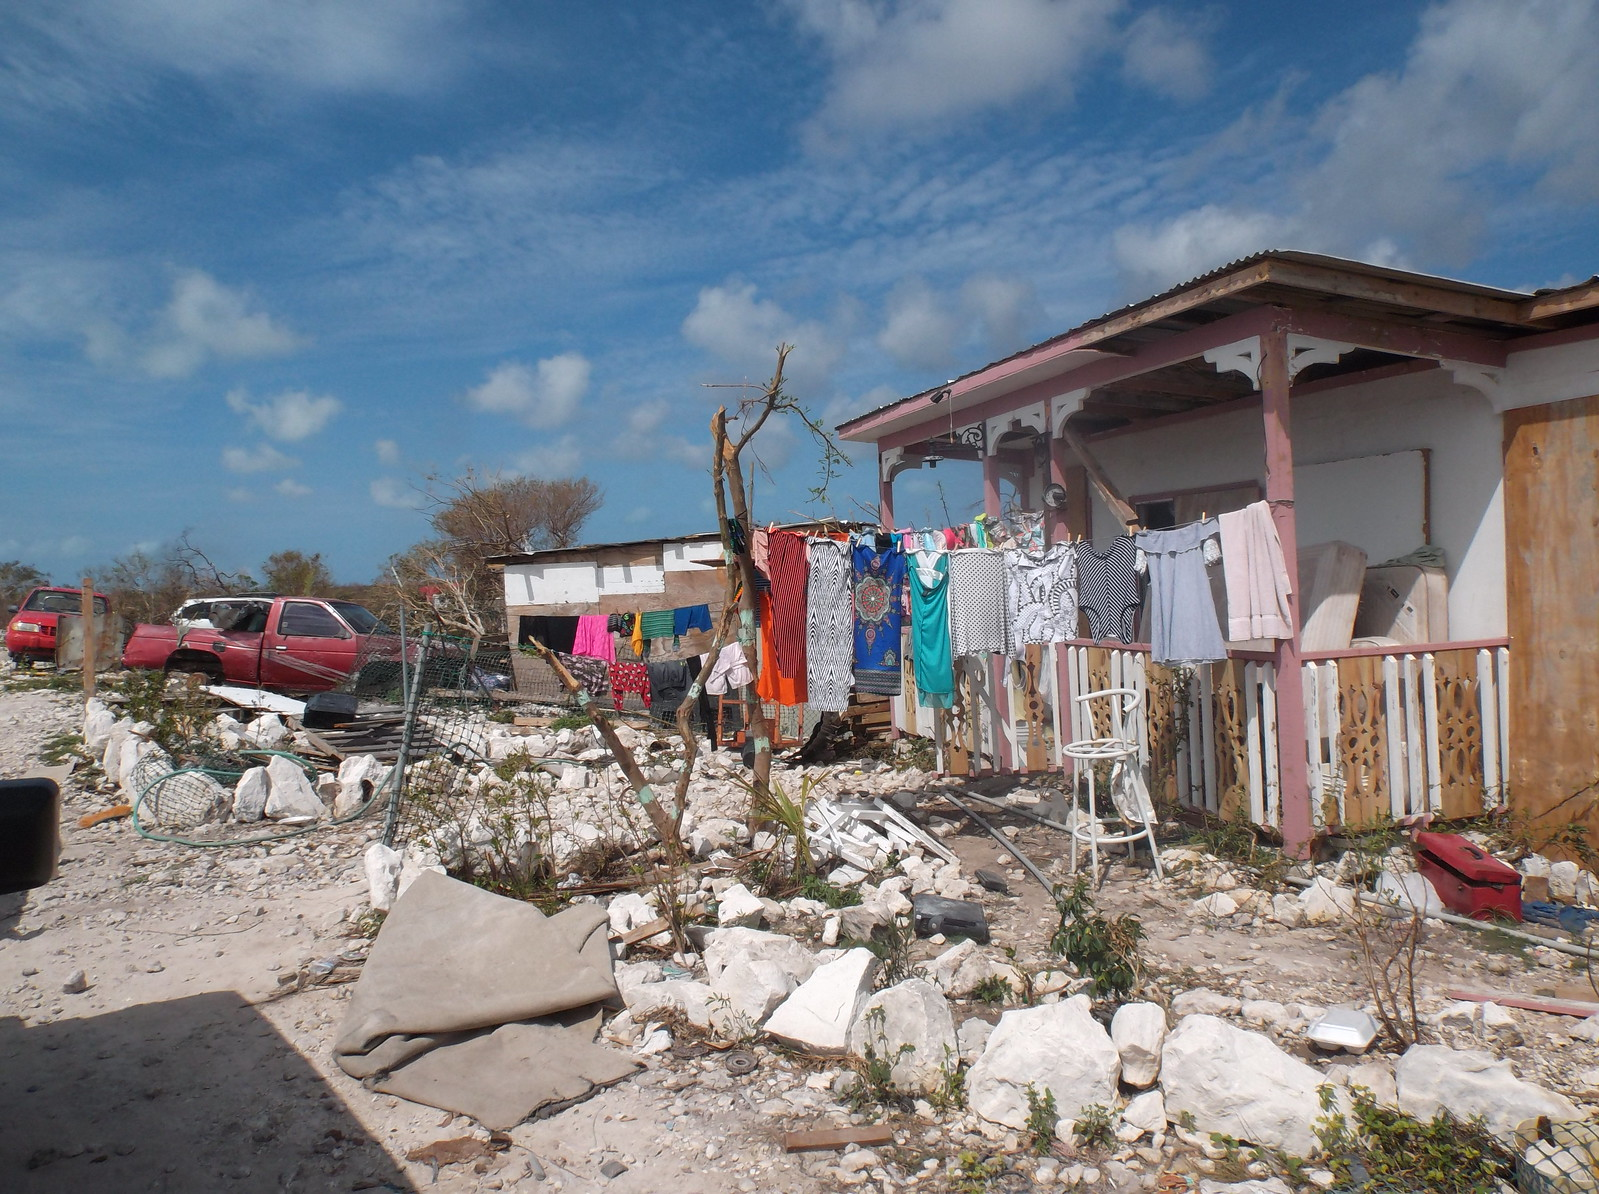 Salvation Army disaster response: Turks and Caicos